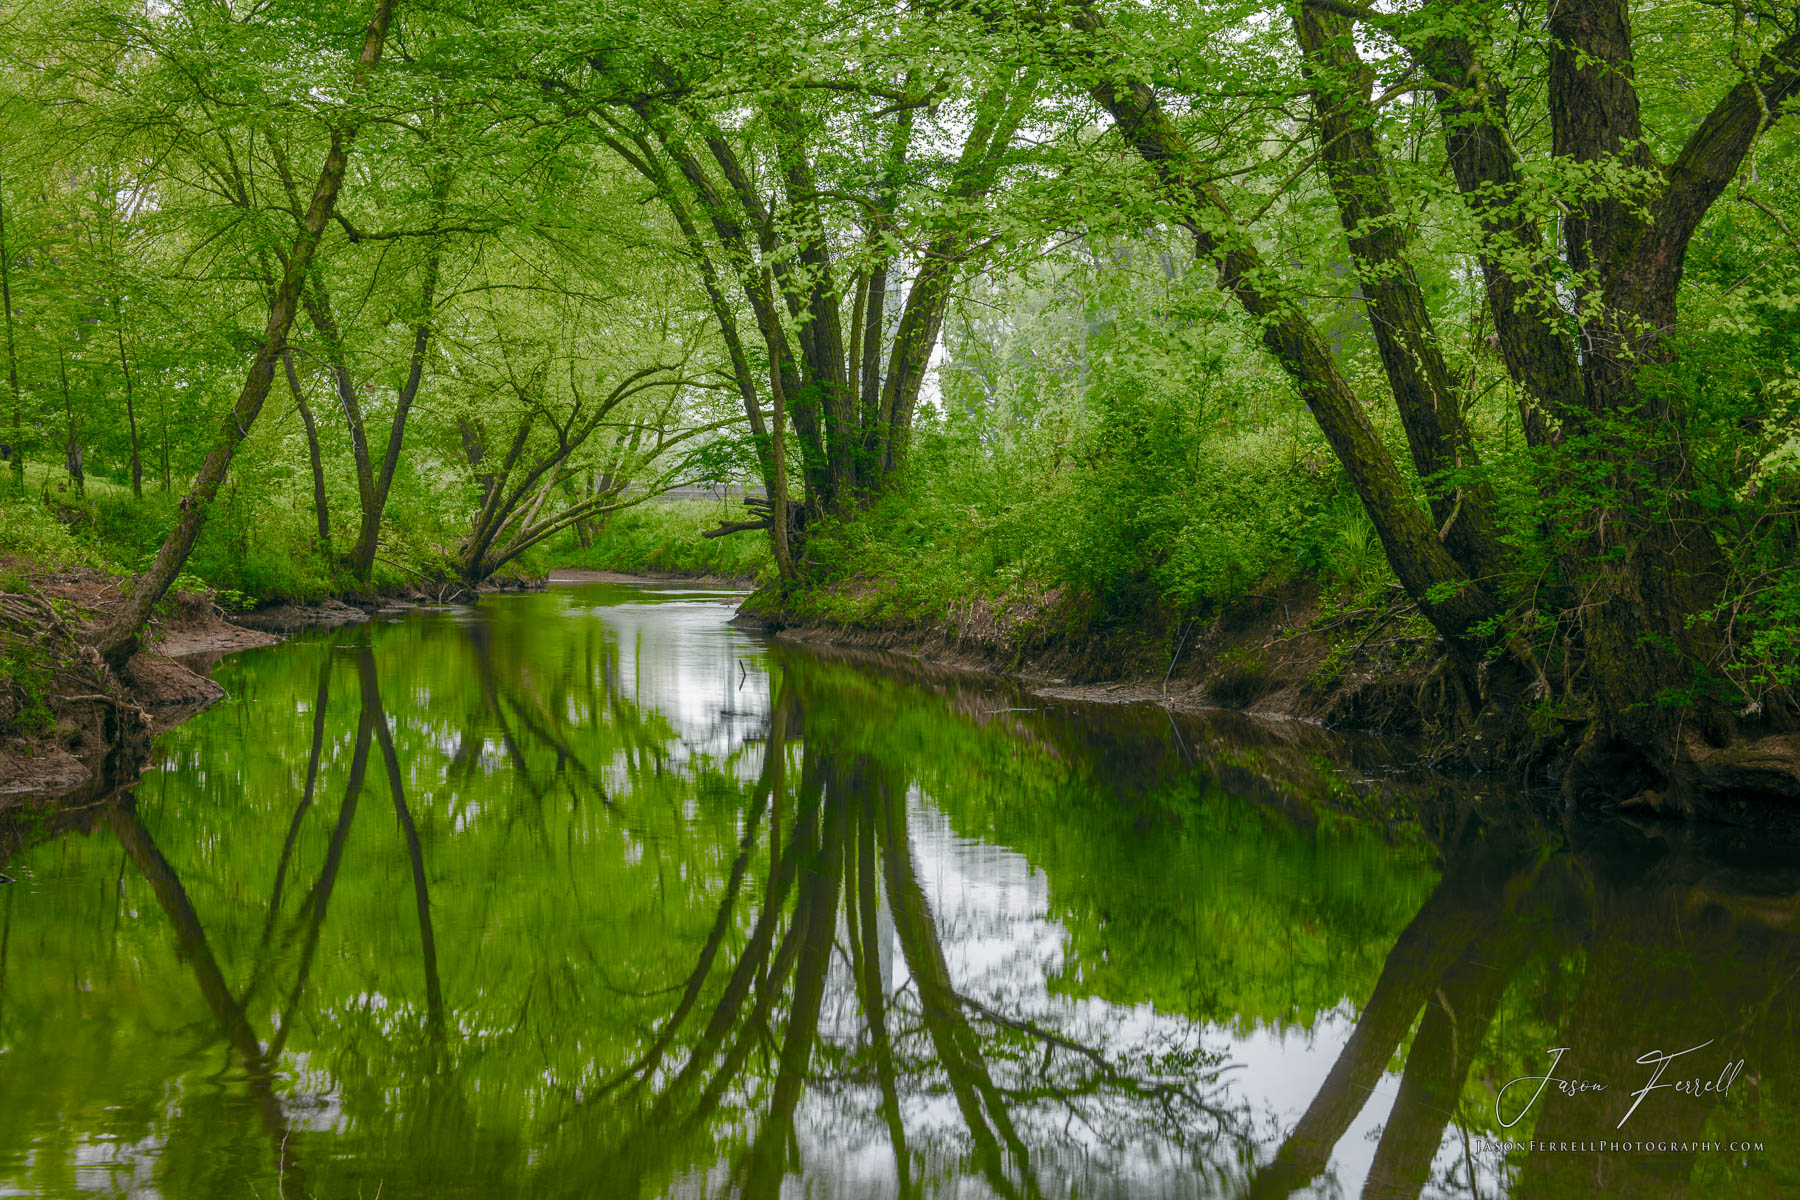 green river, bayou la nana, nacogdoches, texas, reflection, trees, stream, , photo